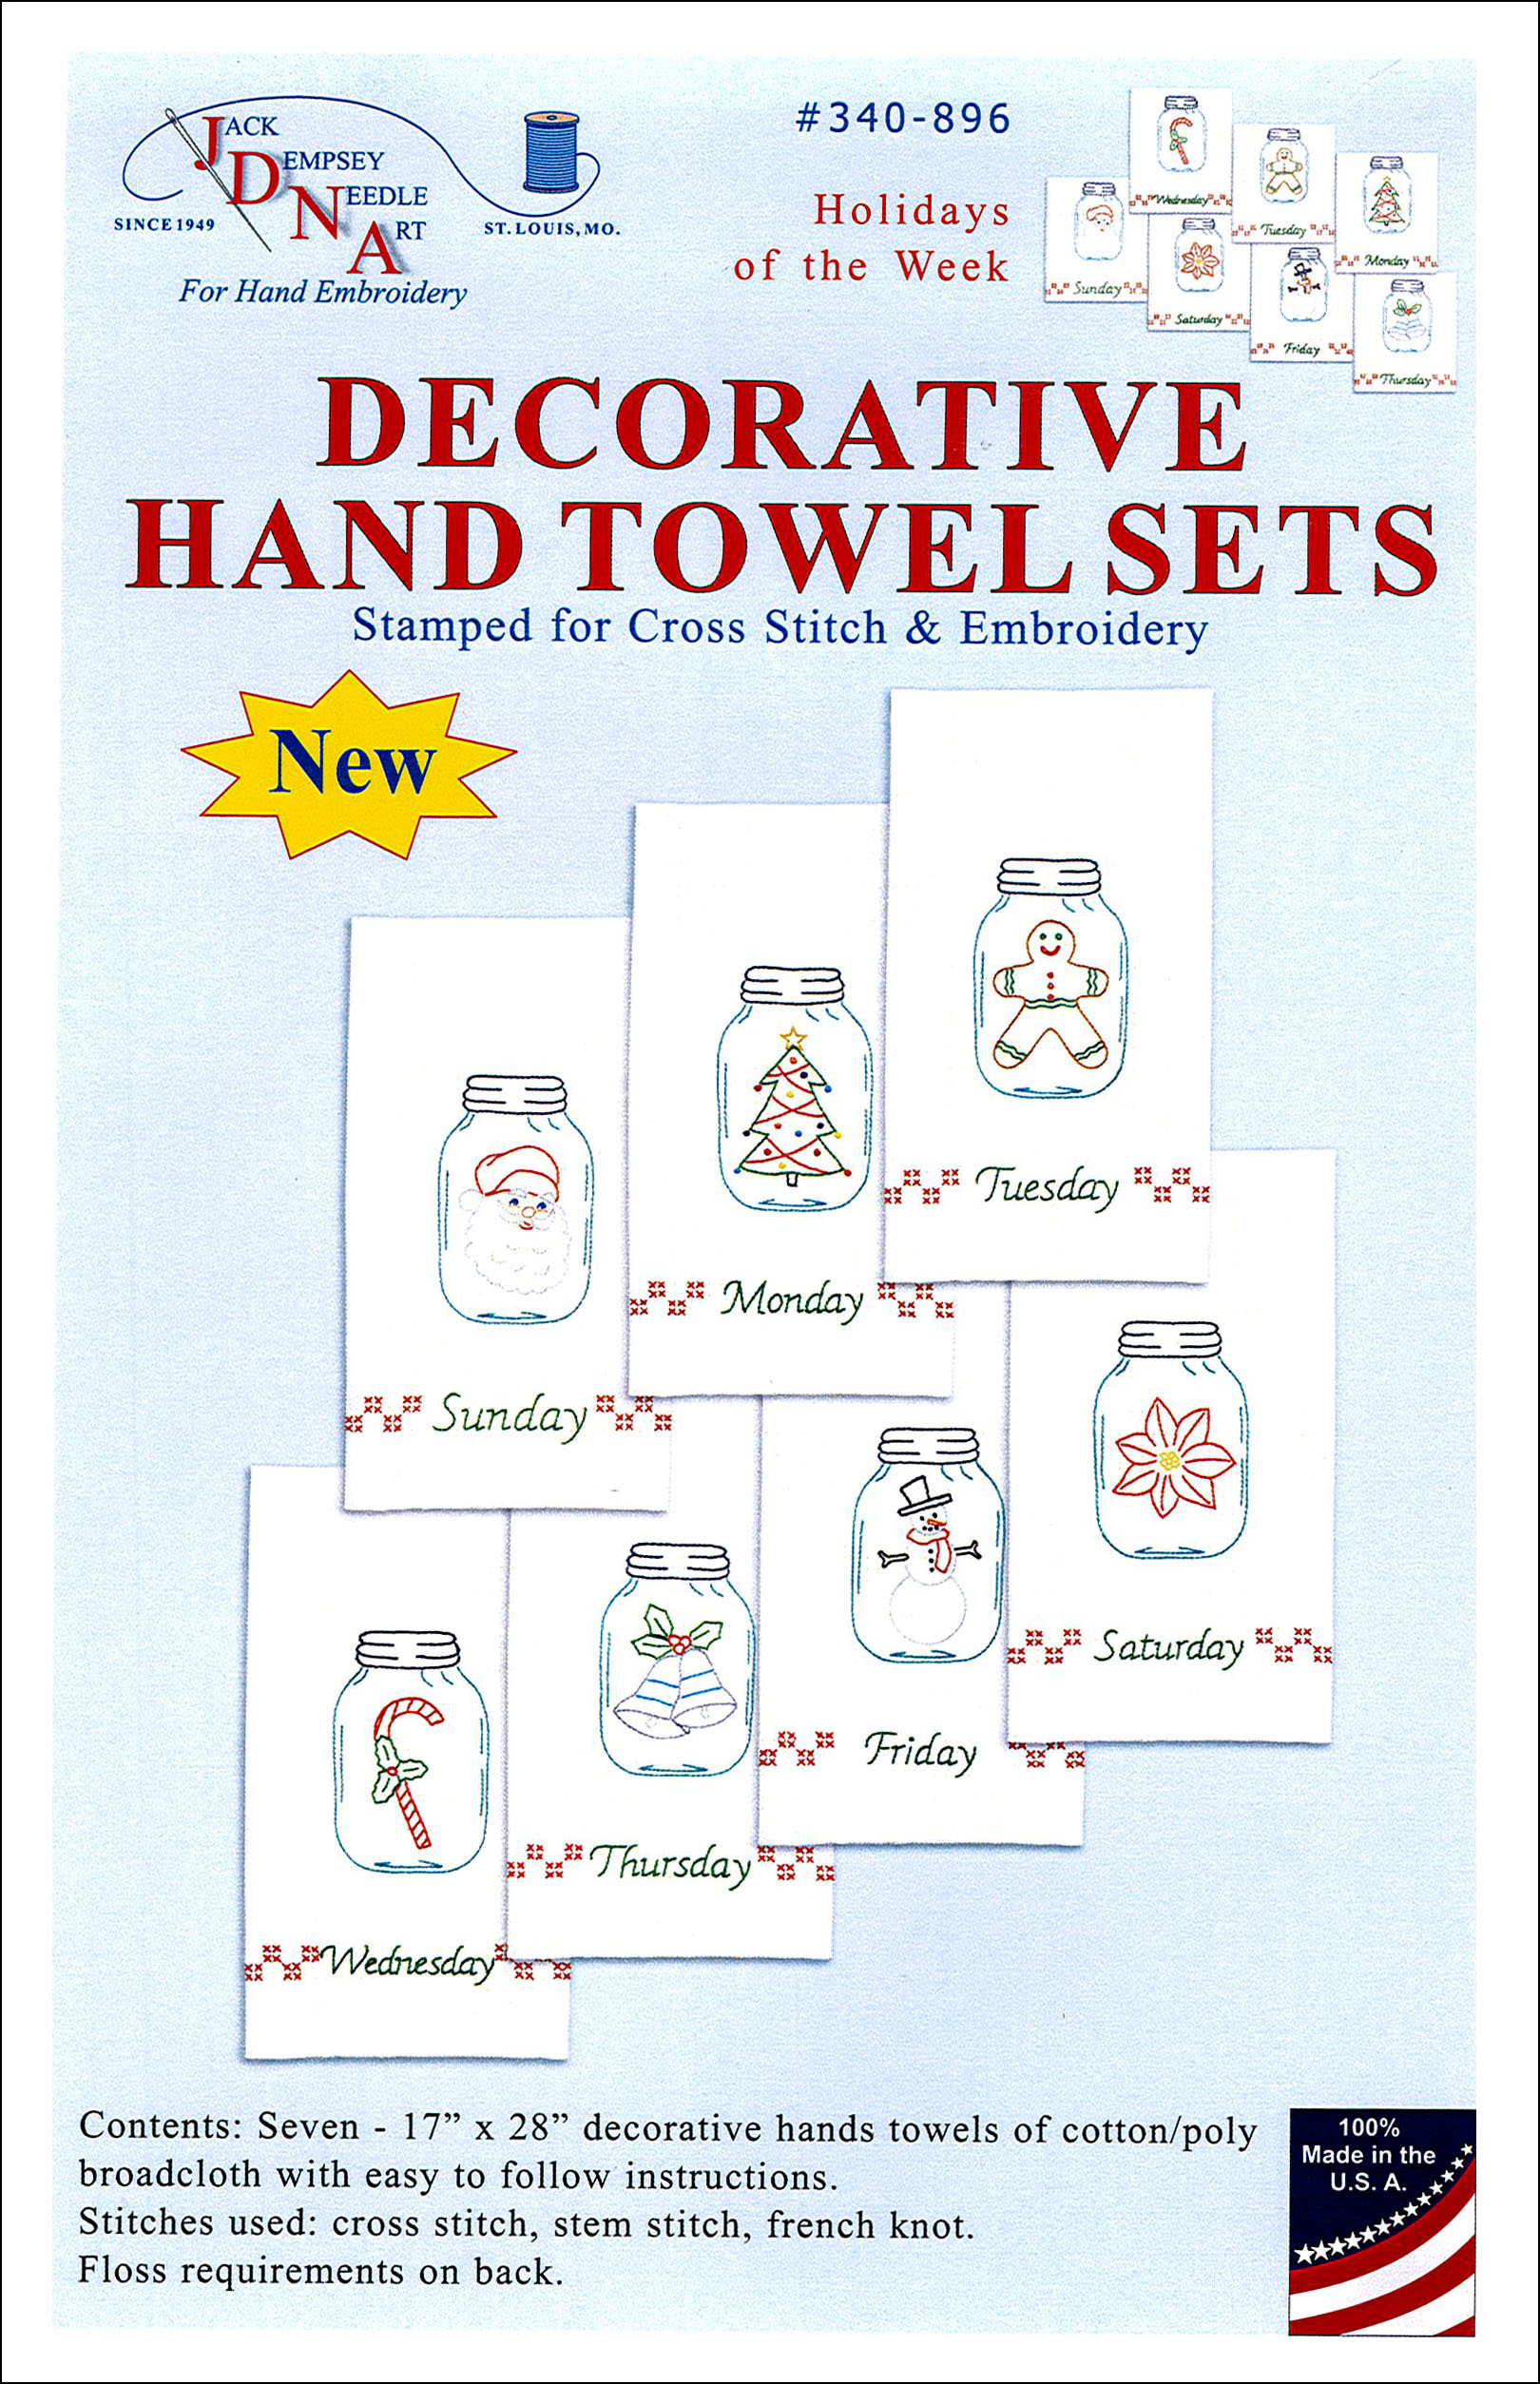 Jack Dempsey Decorative Hand Towel Holidays of Week 7 pc